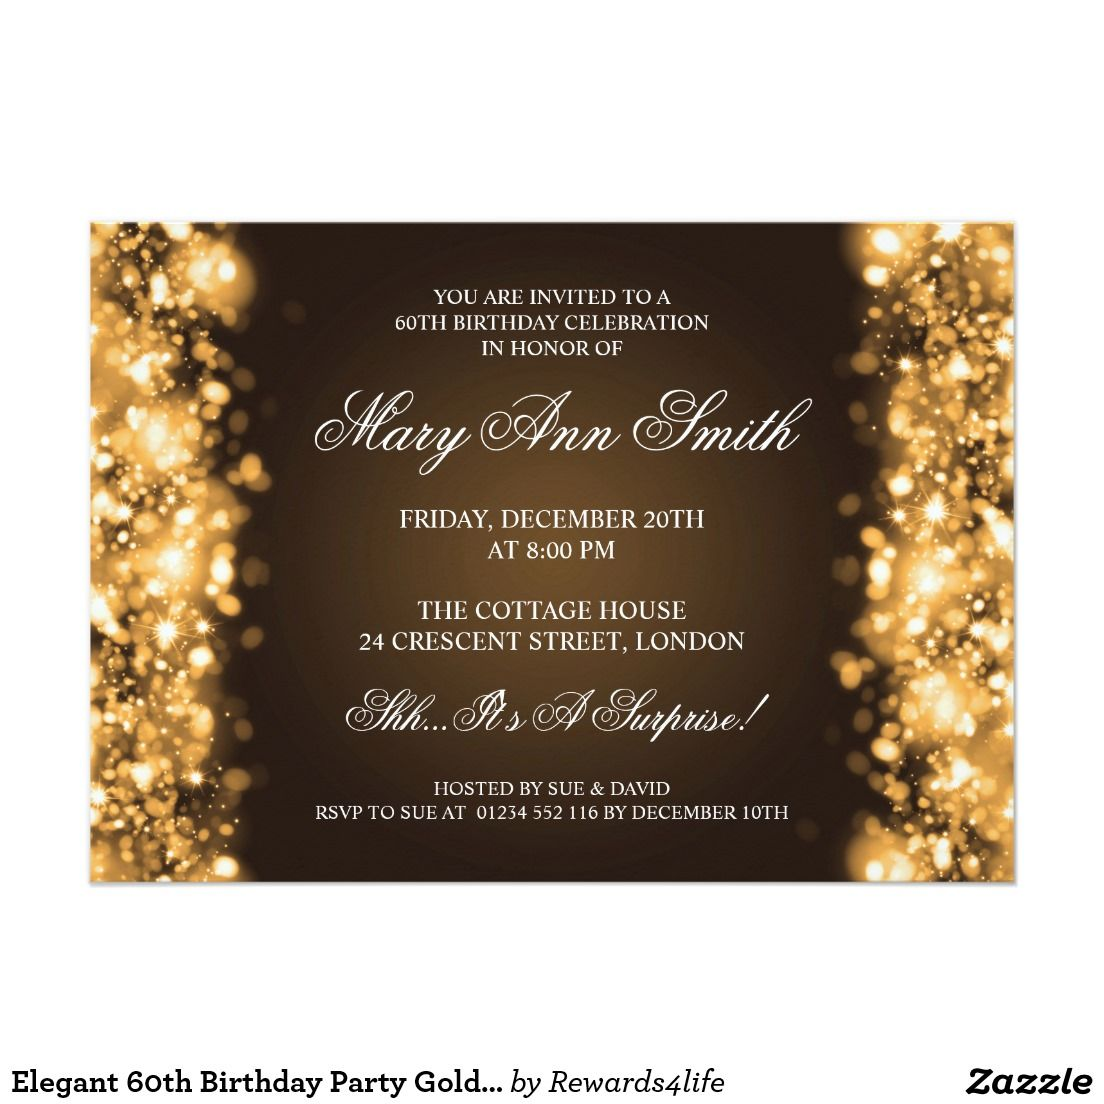 Elegant 60th birthday party gold sparkling lights dads 70th elegant wedding save the date lights blue paper invitation card bookmarktalkfo Gallery